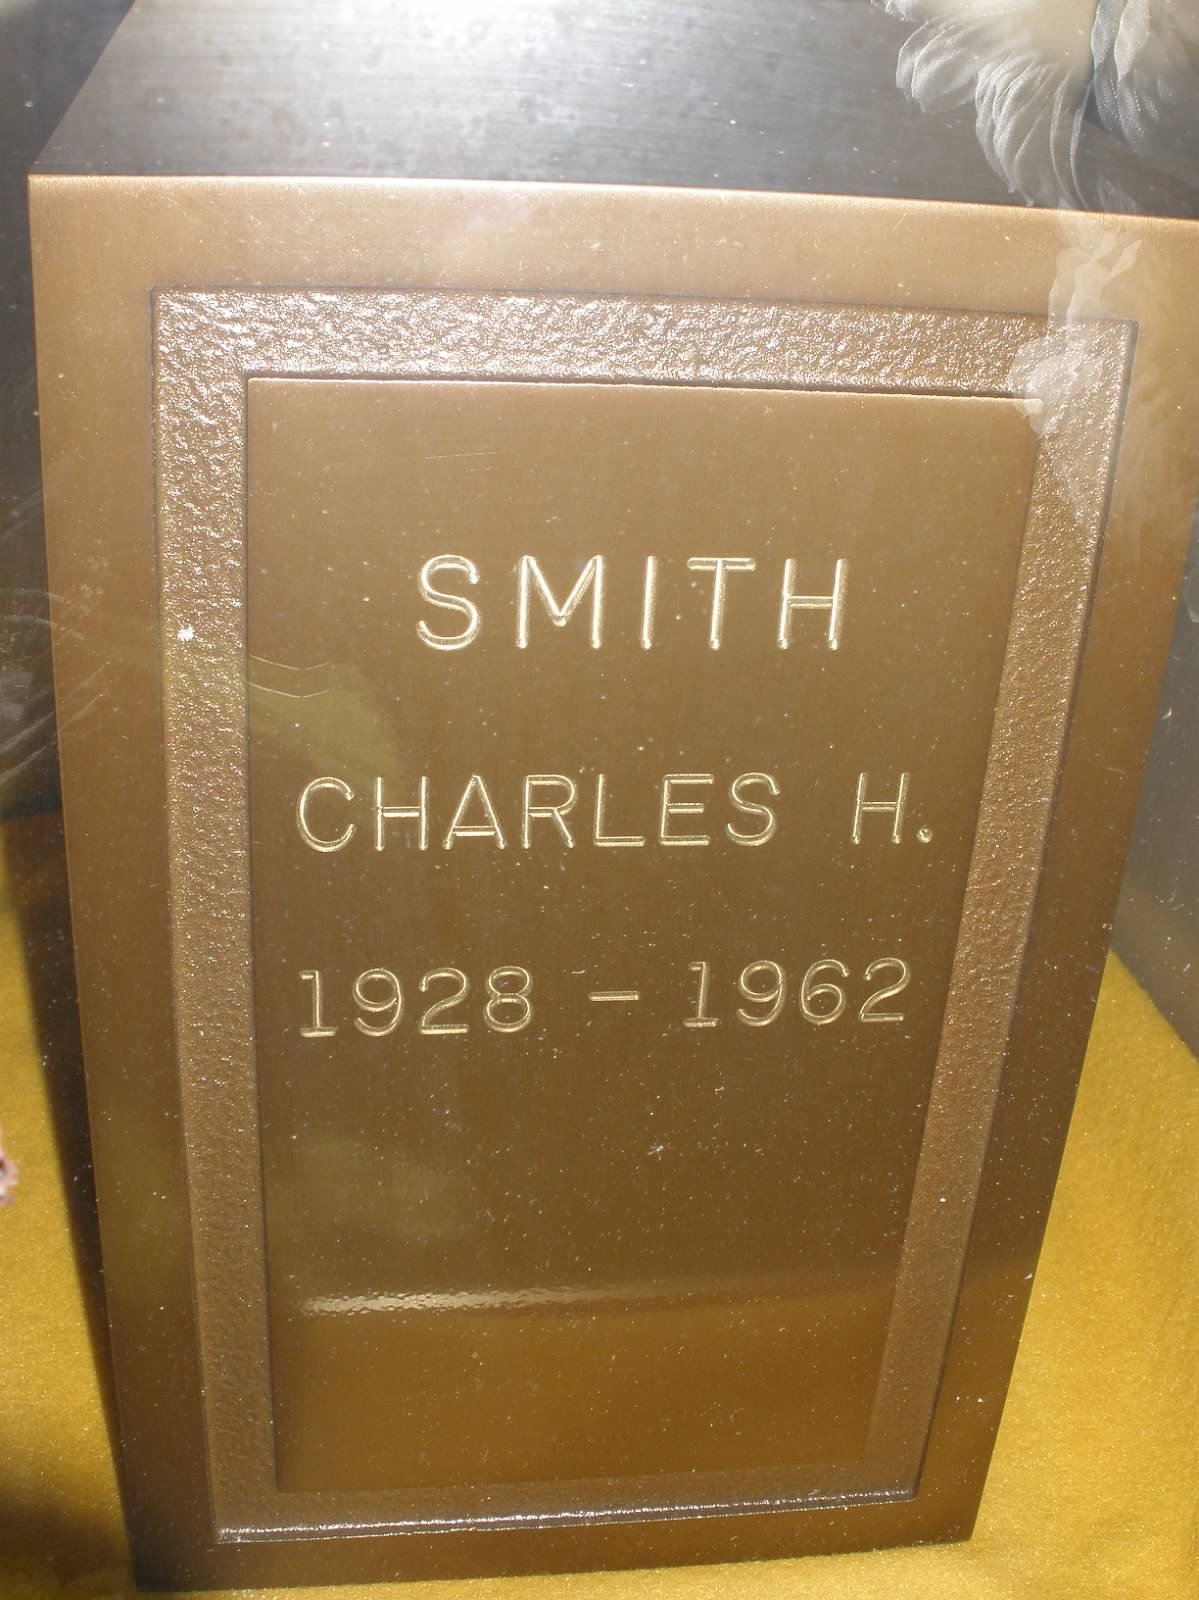 Charles H Smith